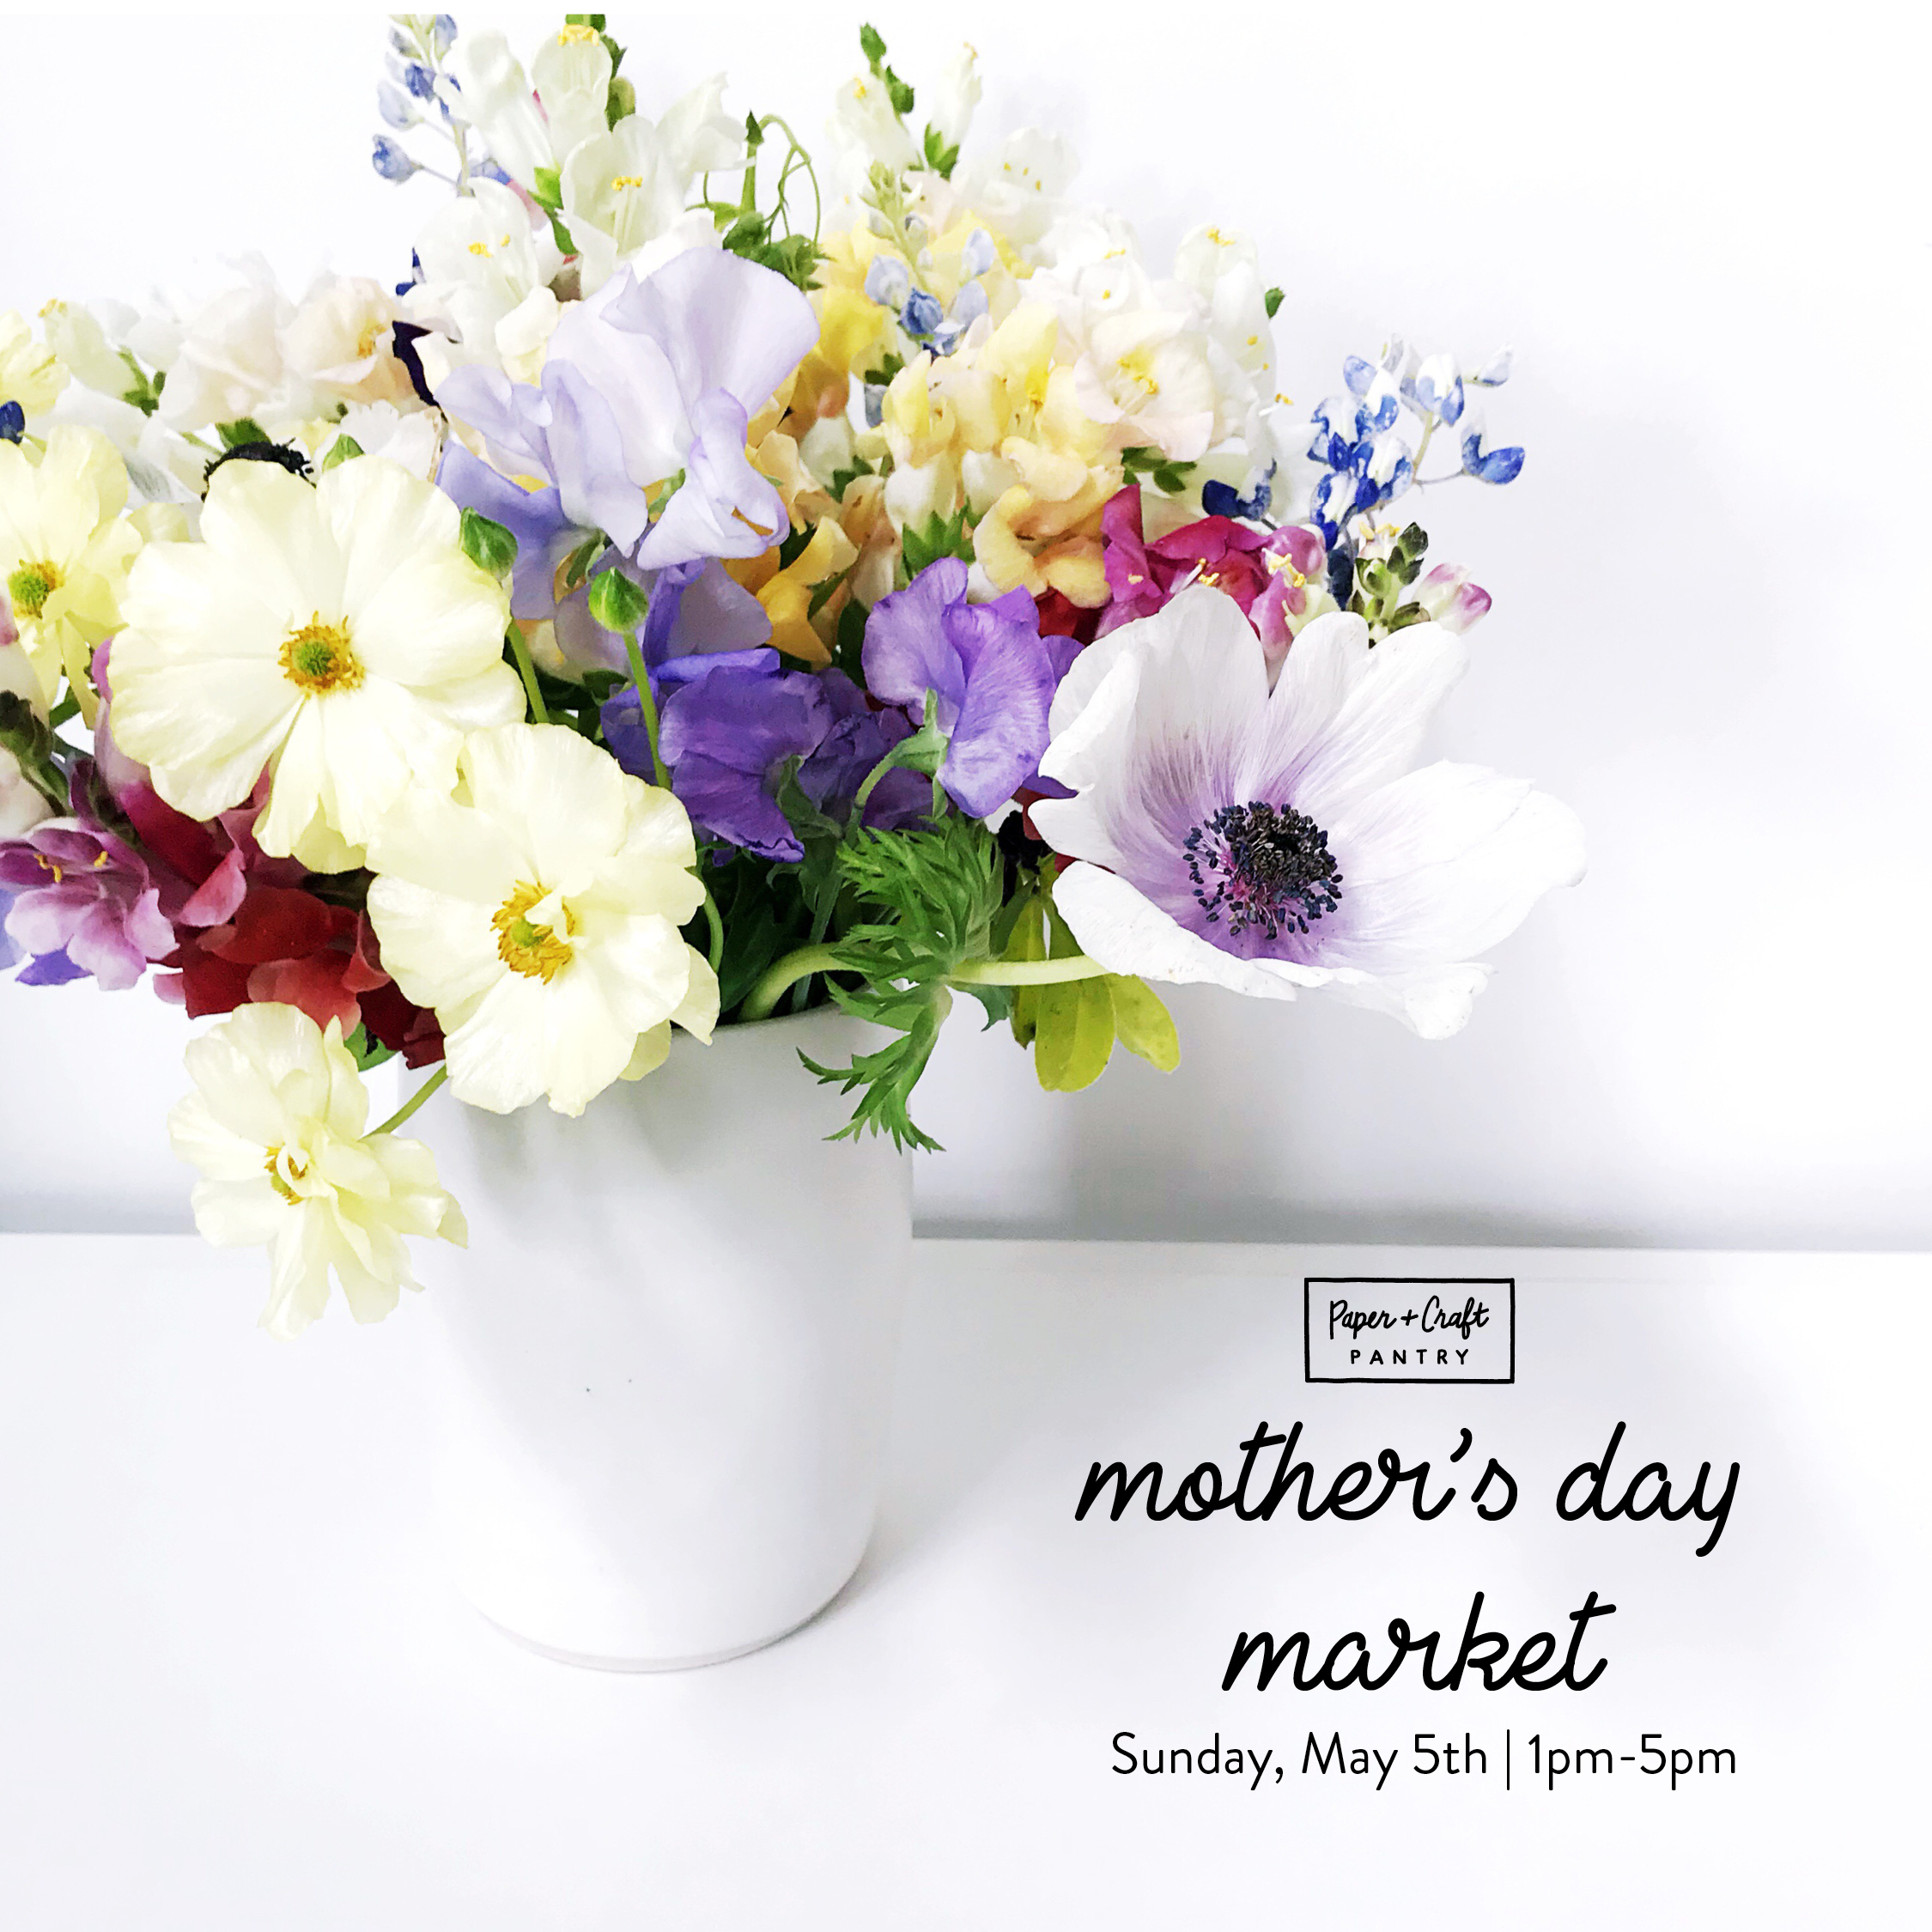 The Paper + Craft Pantry annual Mother's Day Market is here!